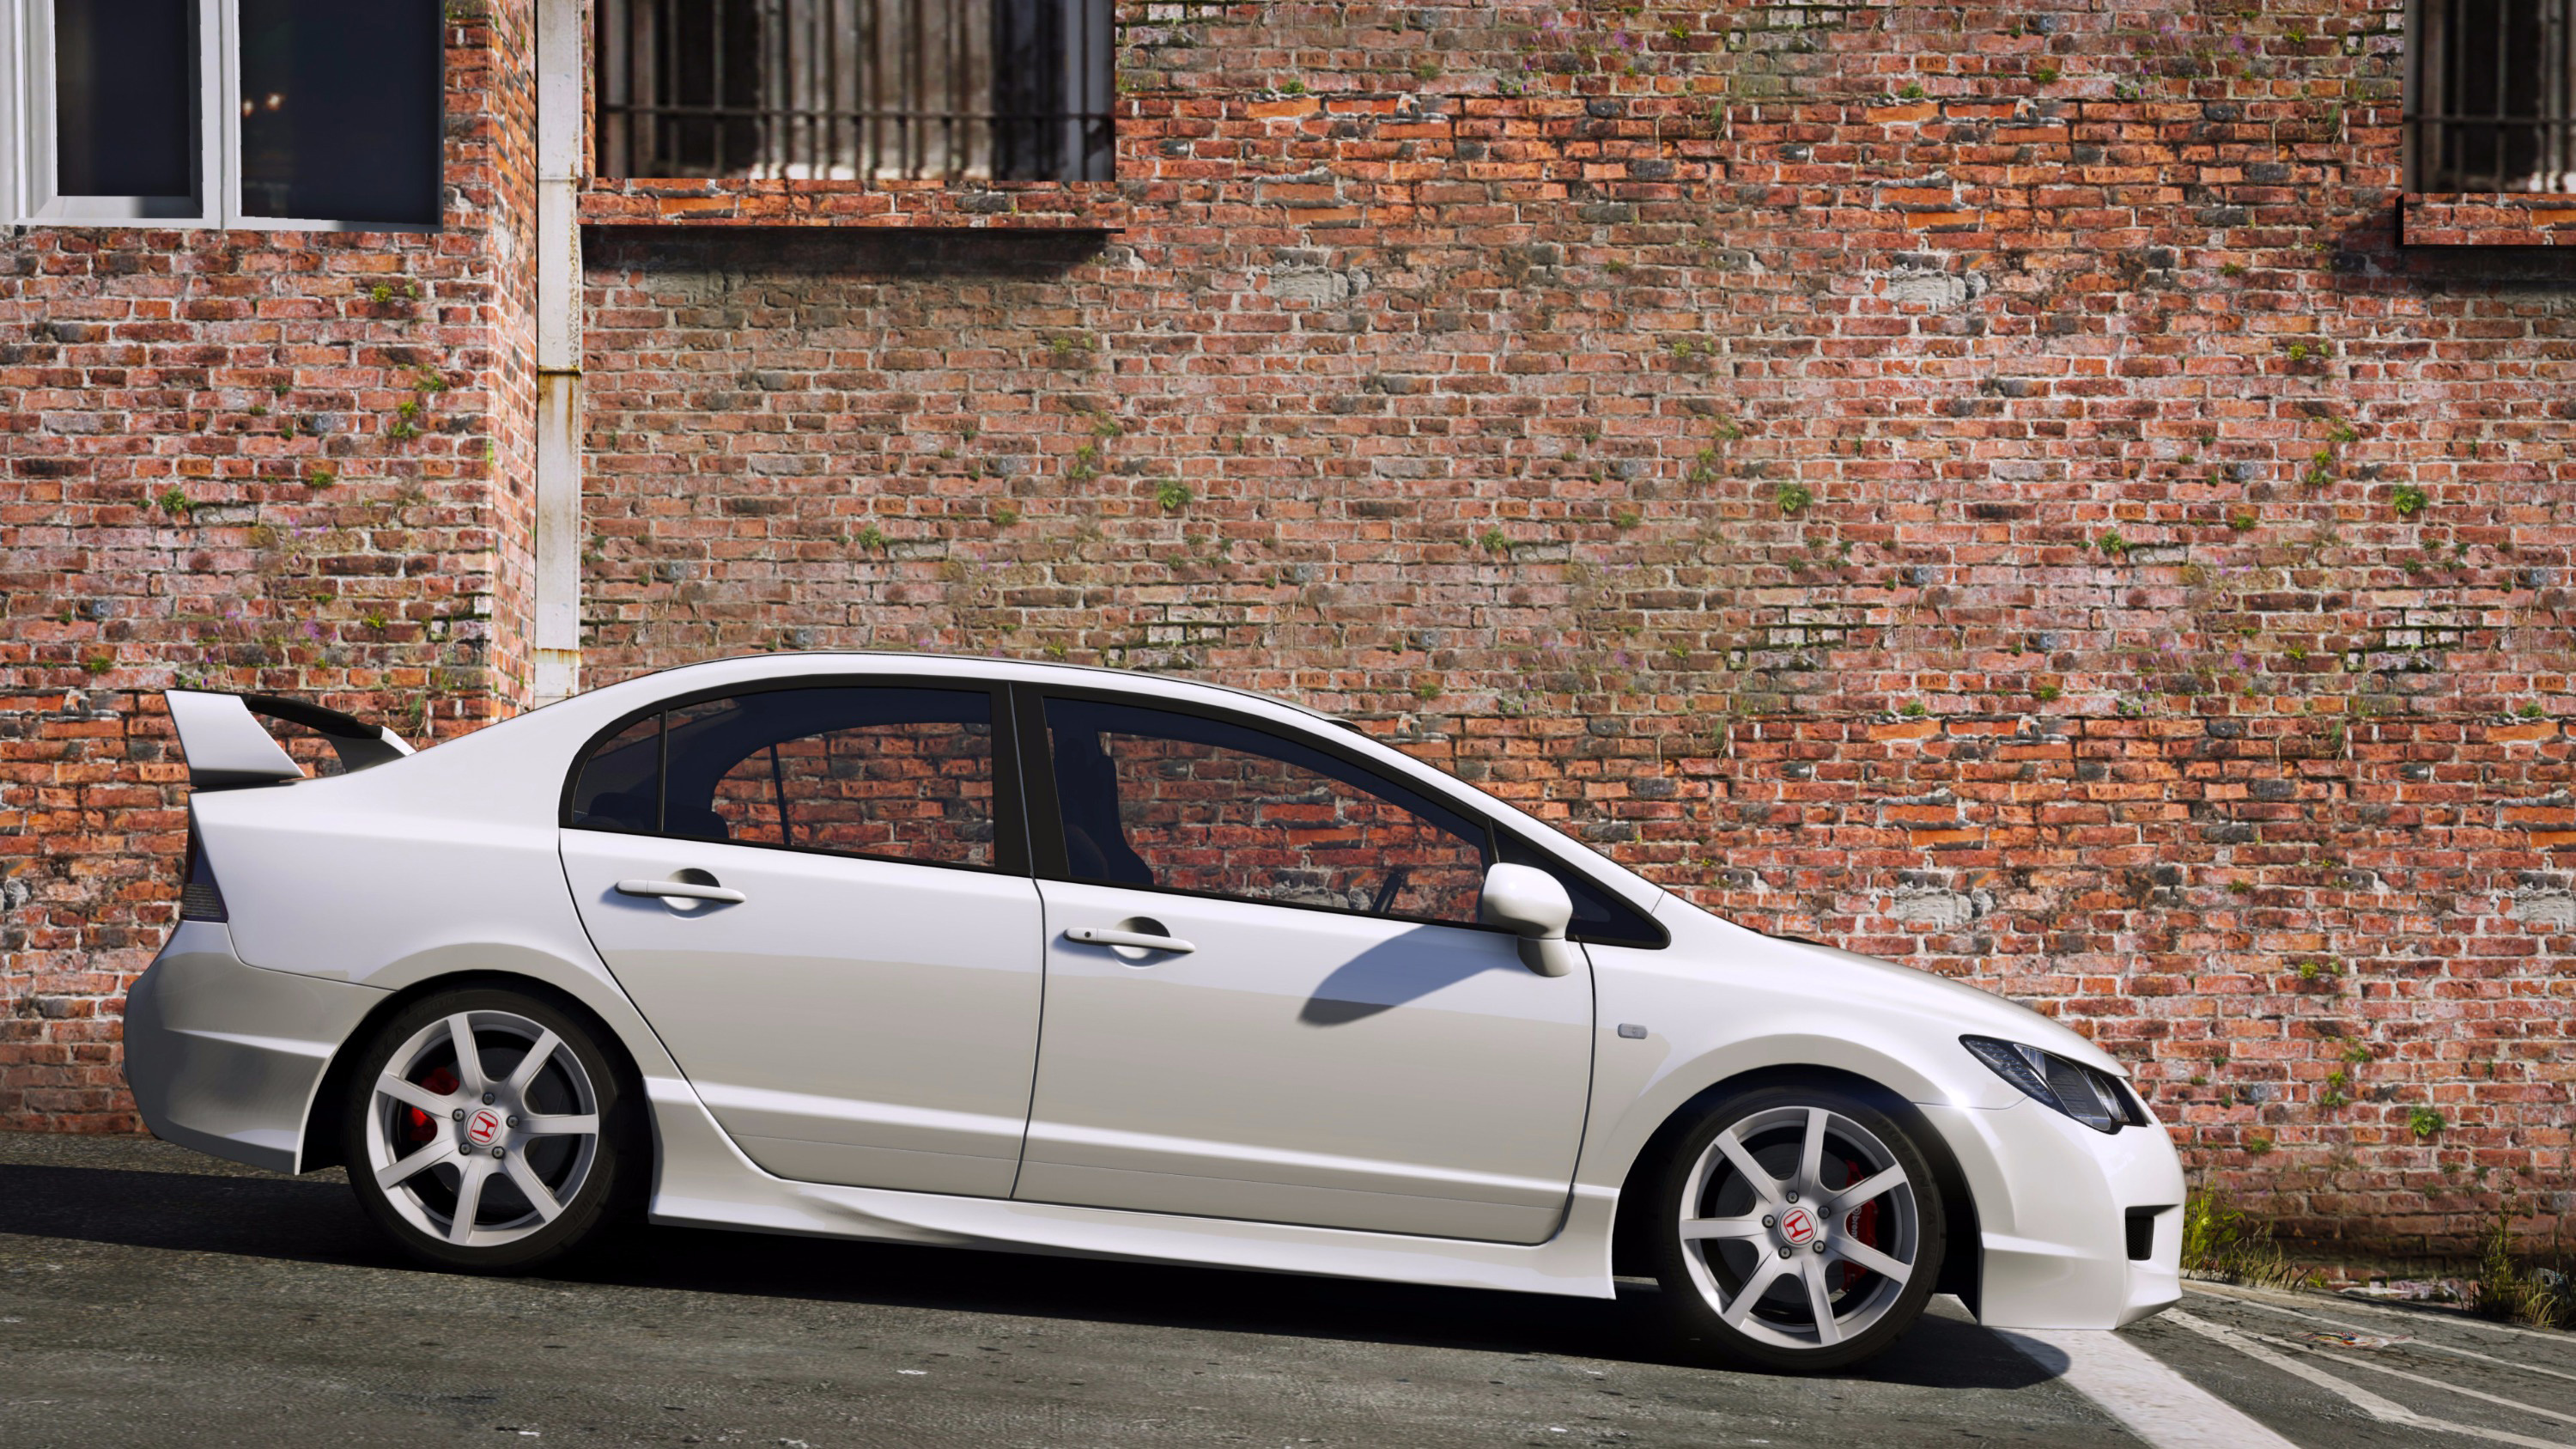 2008 honda civic type r fd2 mugen j 39 s racing rhd. Black Bedroom Furniture Sets. Home Design Ideas